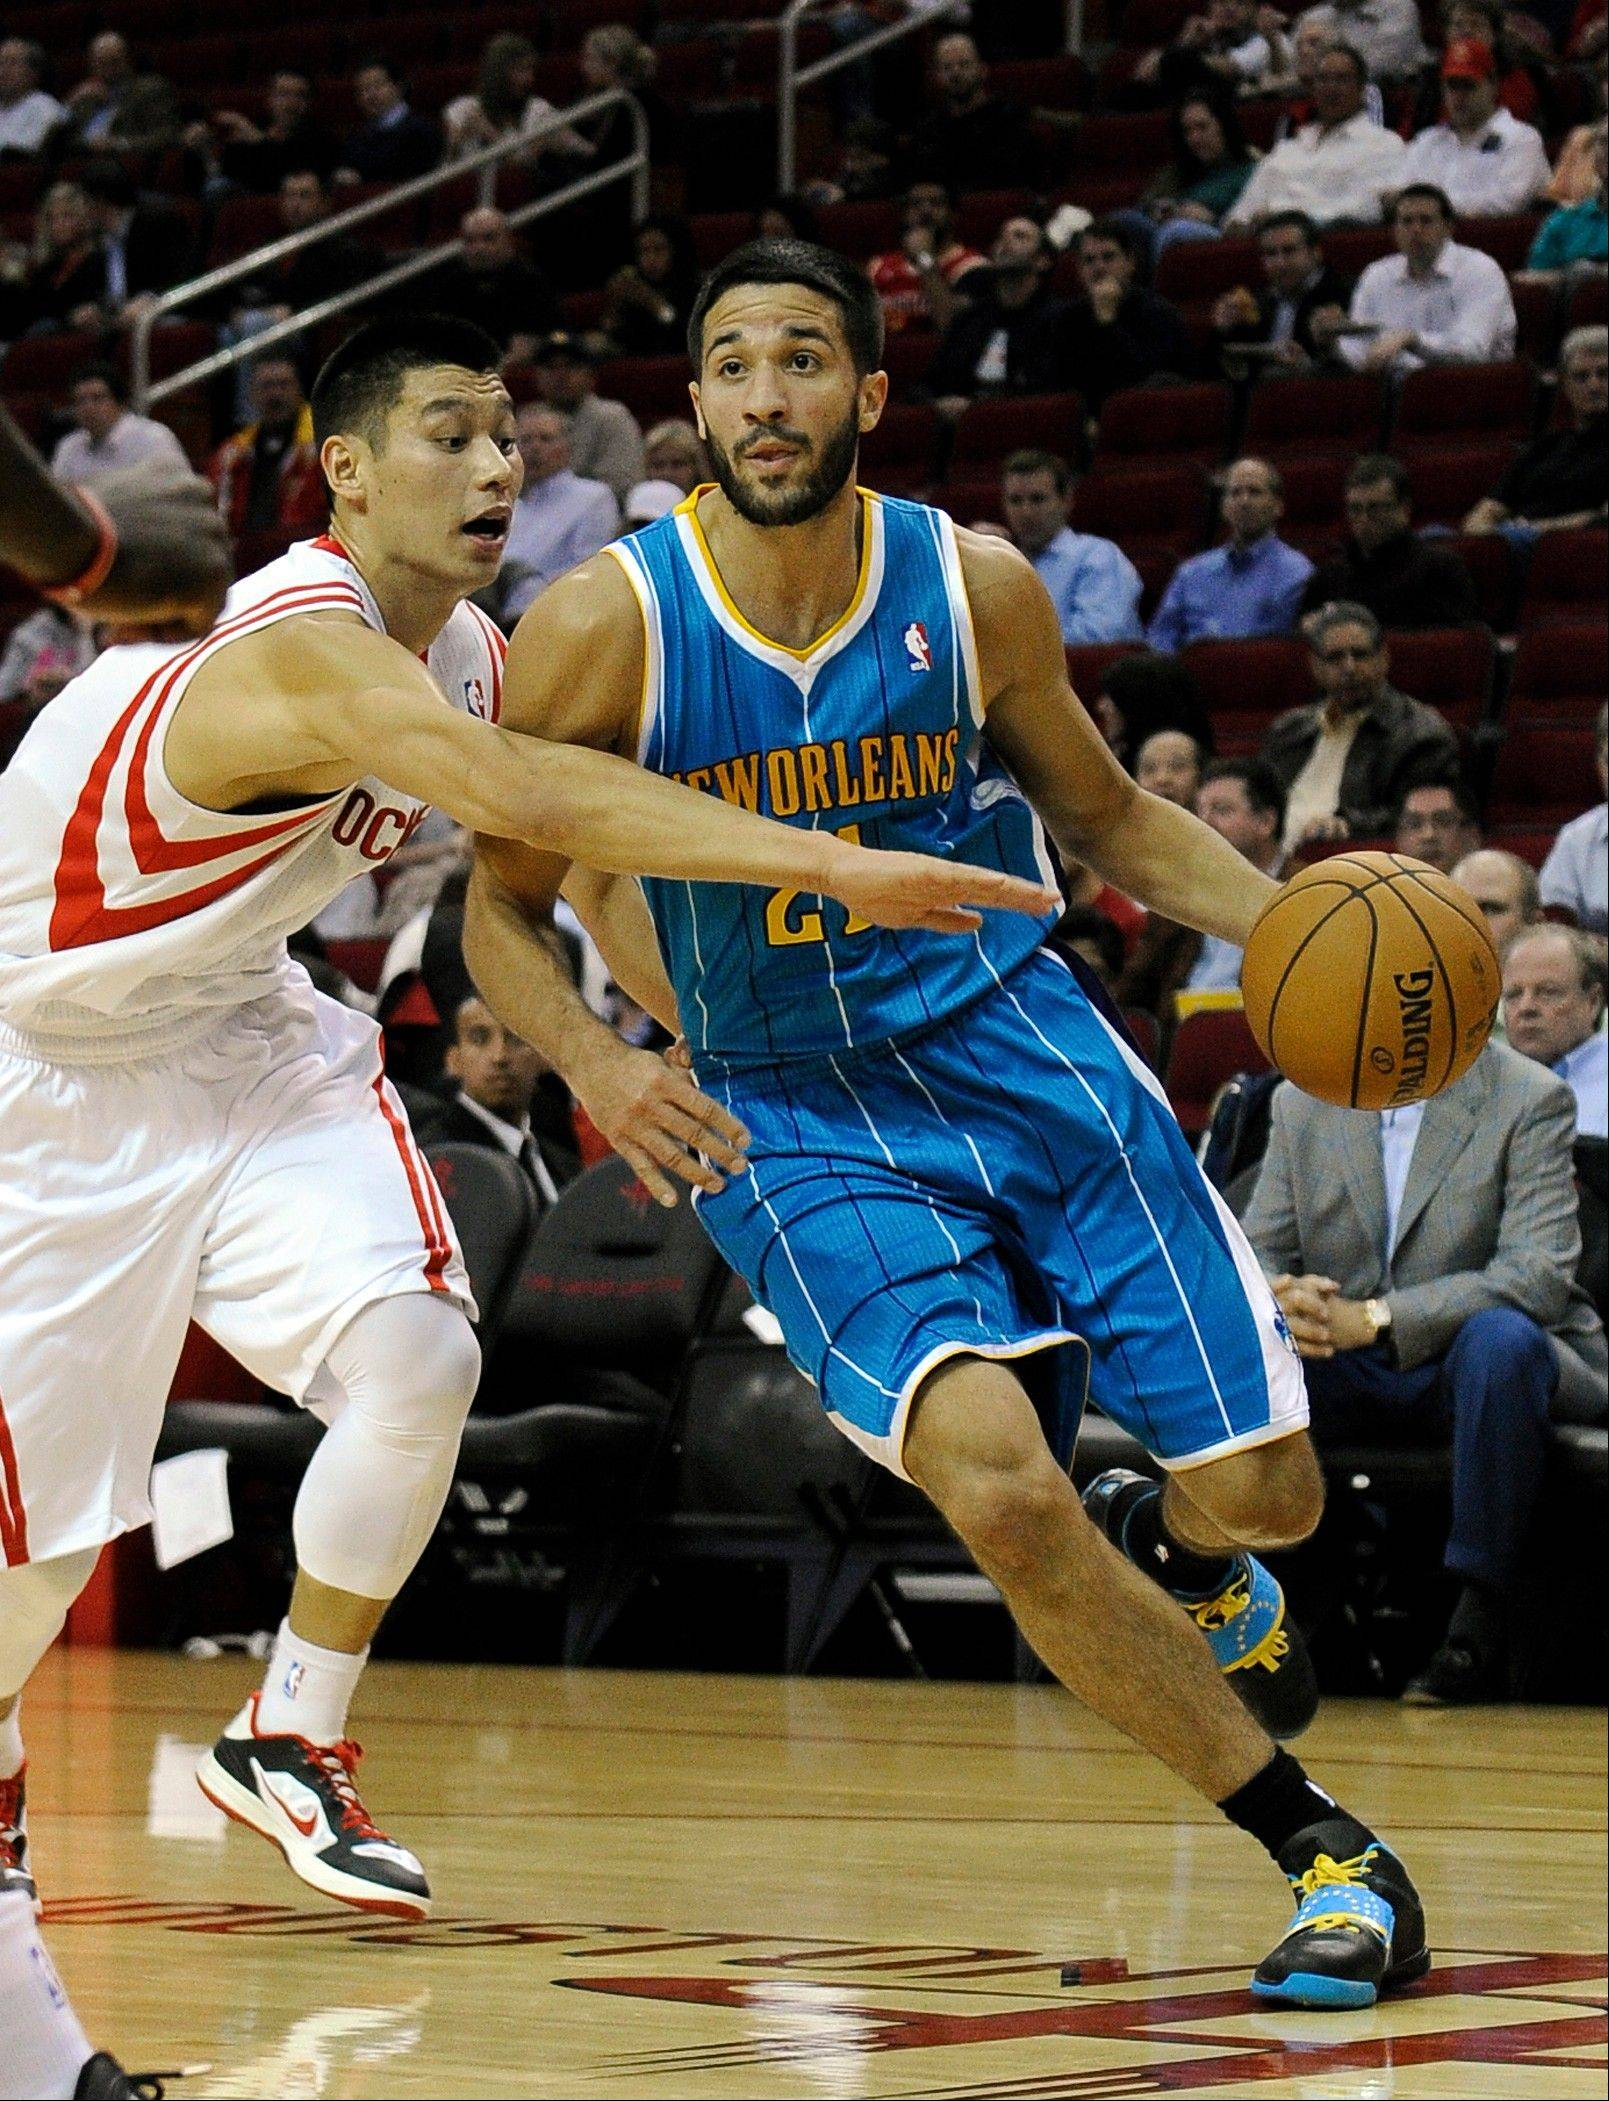 Houston Rockets guard Jeremy Lin reaches for the New Orleans Hornets' Greivis Vasquez Wednesday during the first half in Houston.